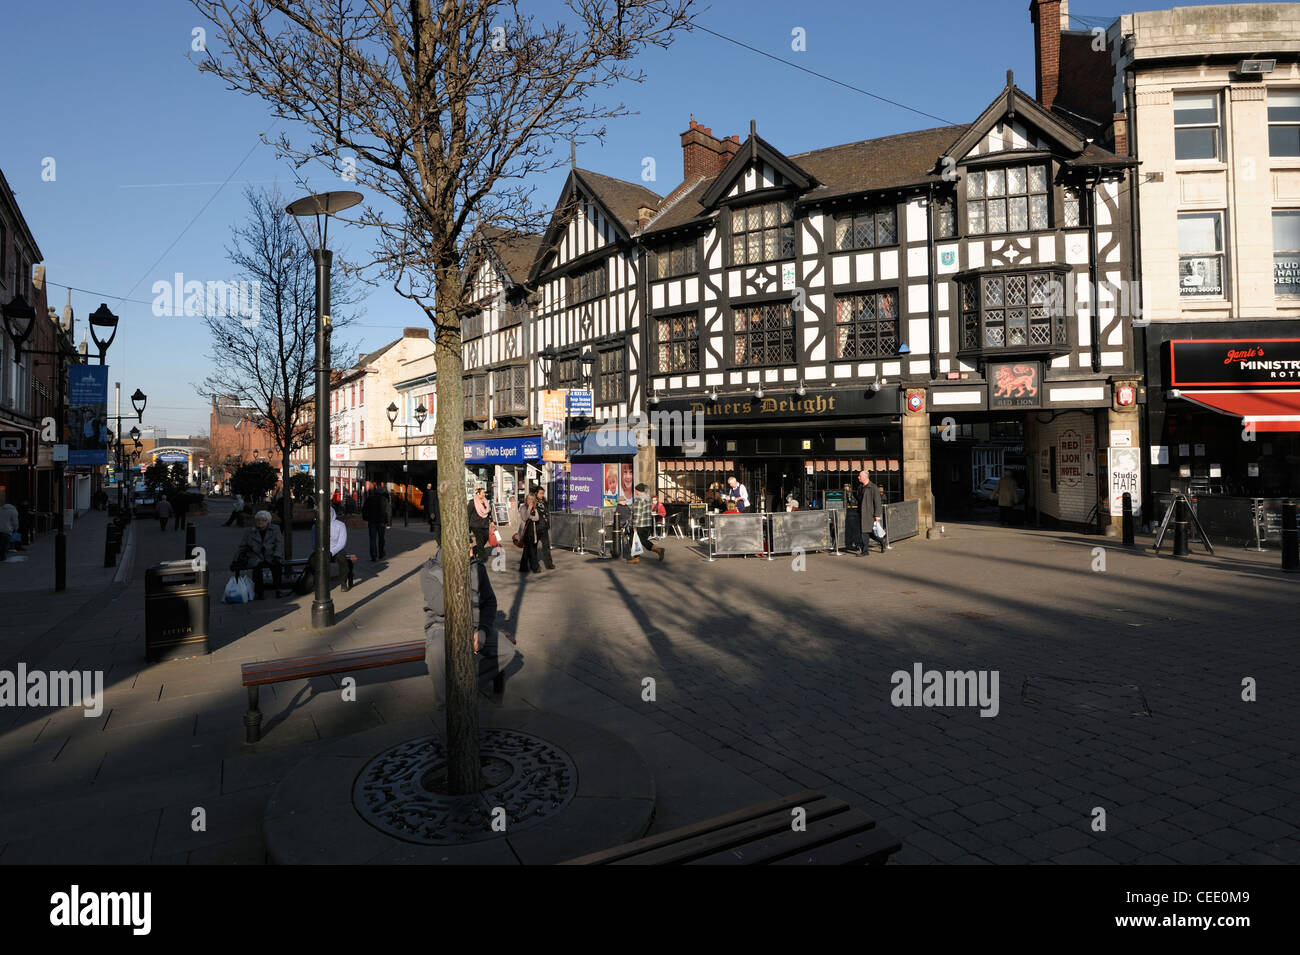 Rotherham town centre shops - Stock Image